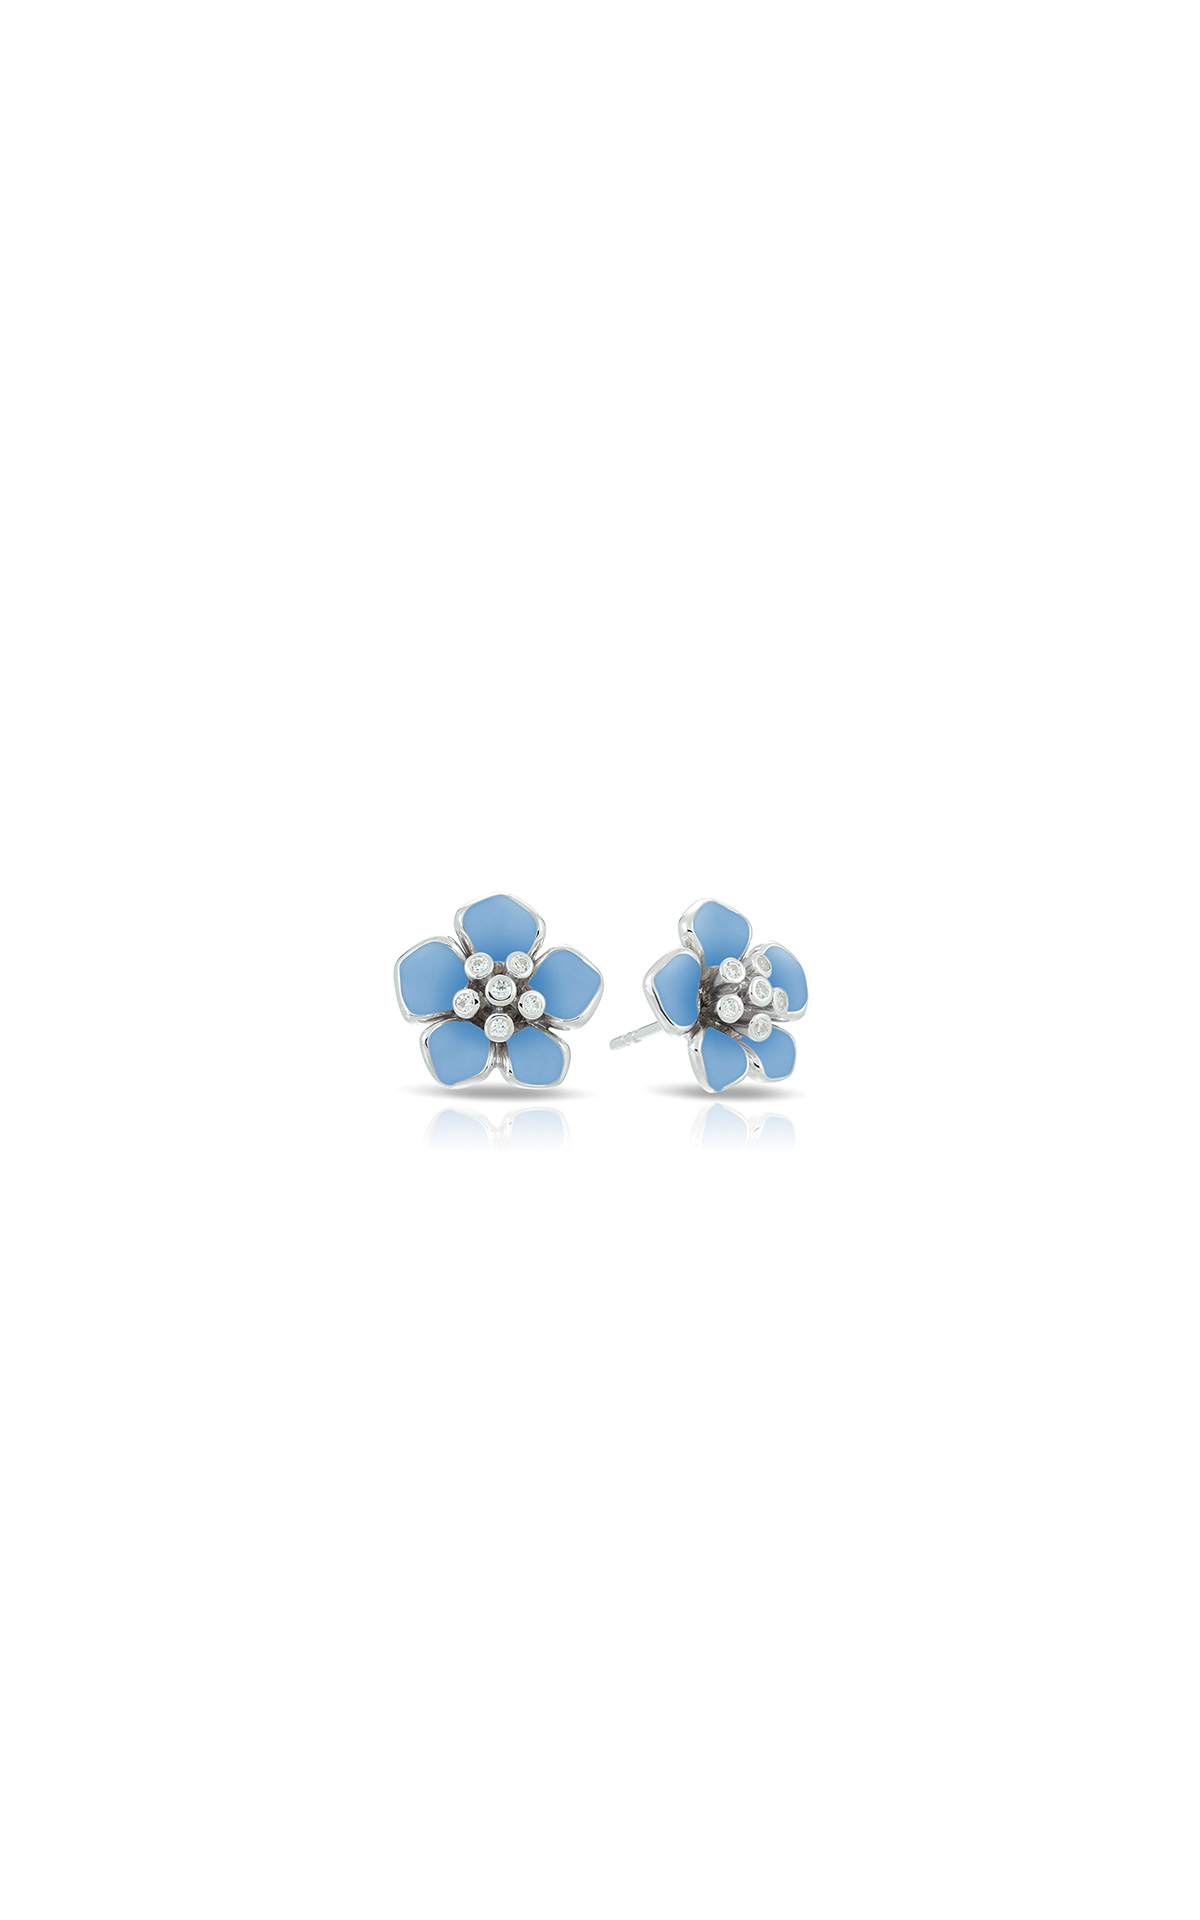 Belle Etoile Forget-Me-Not Serenity Blue Earrings 3021610703 product image